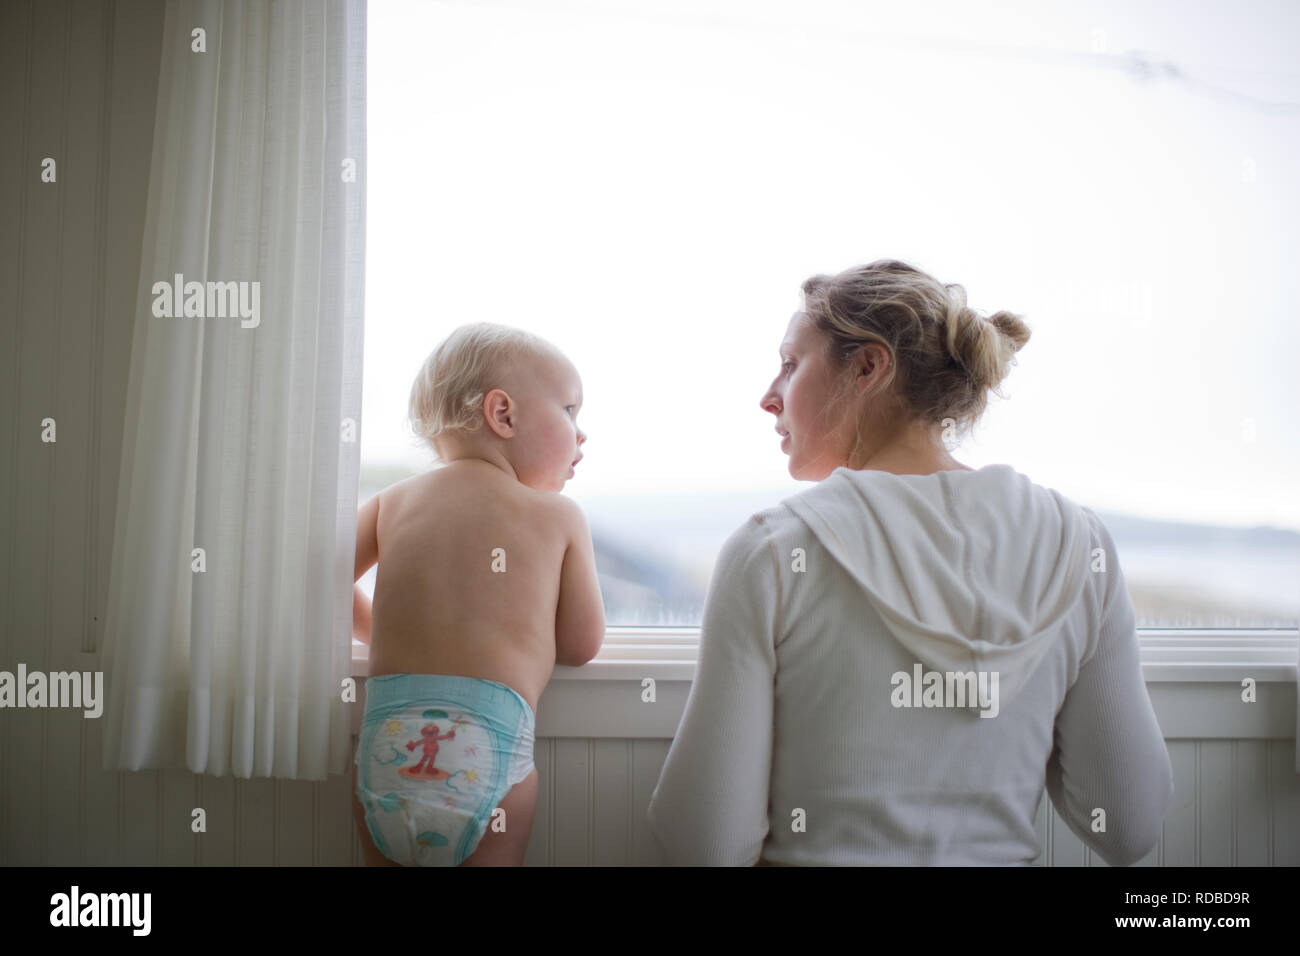 Toddler looking at his young adult mother as they look through a window. - Stock Image